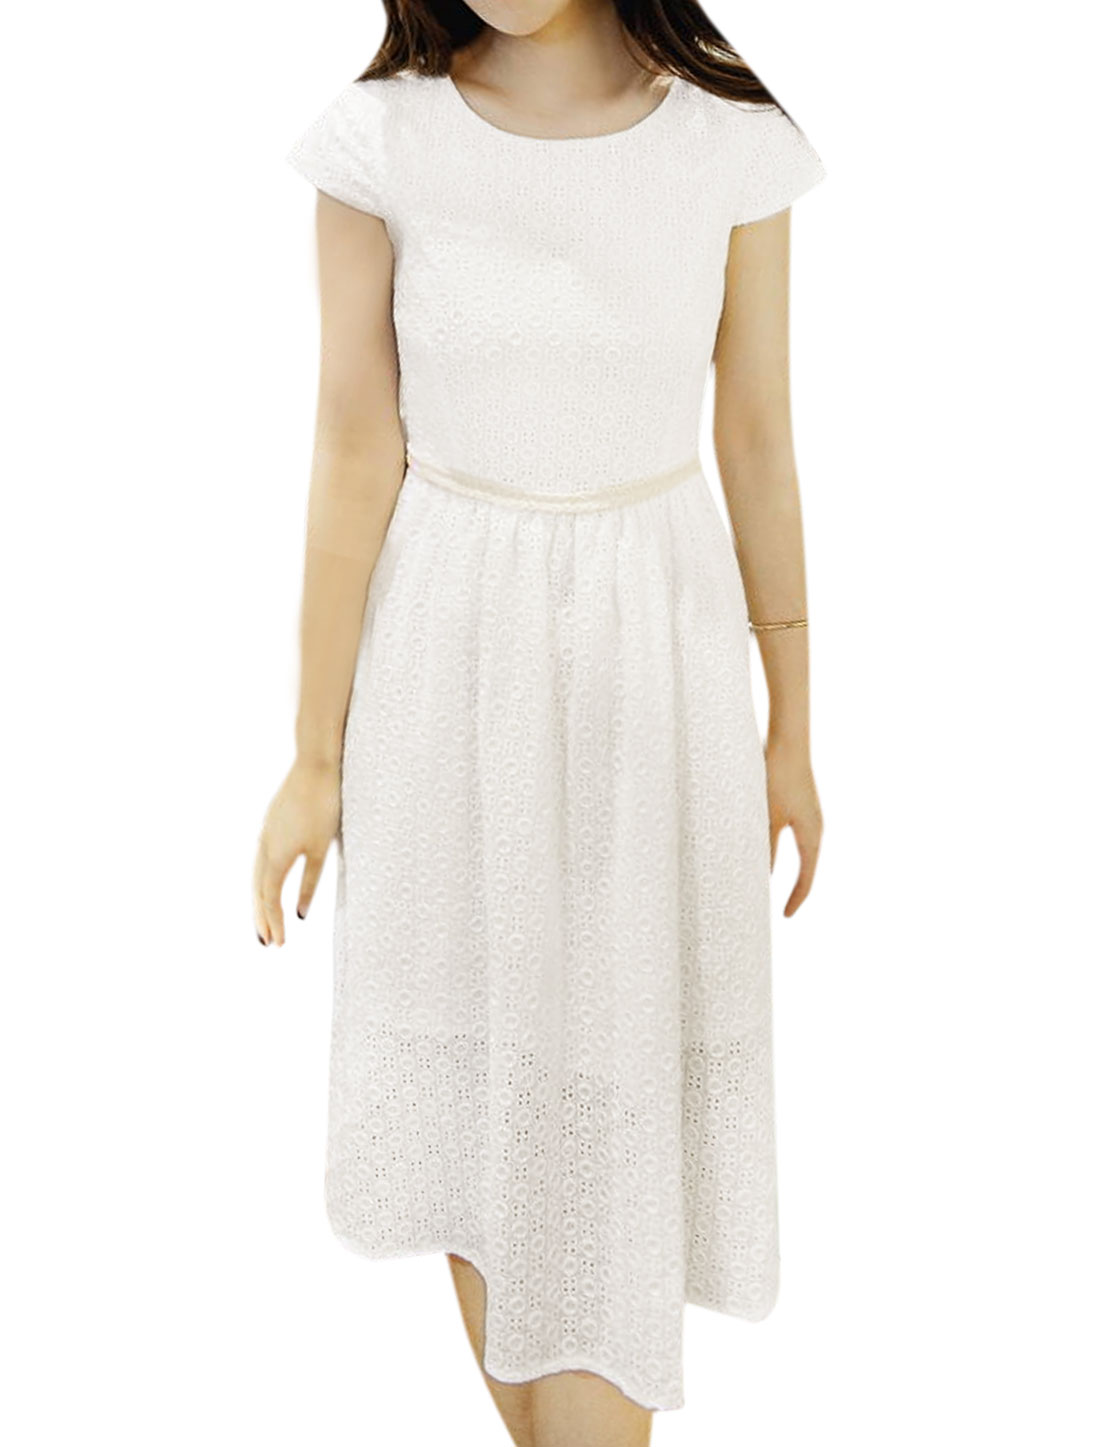 Women Cap Sleeves Embroidery Design Textured Casual Dress White XS